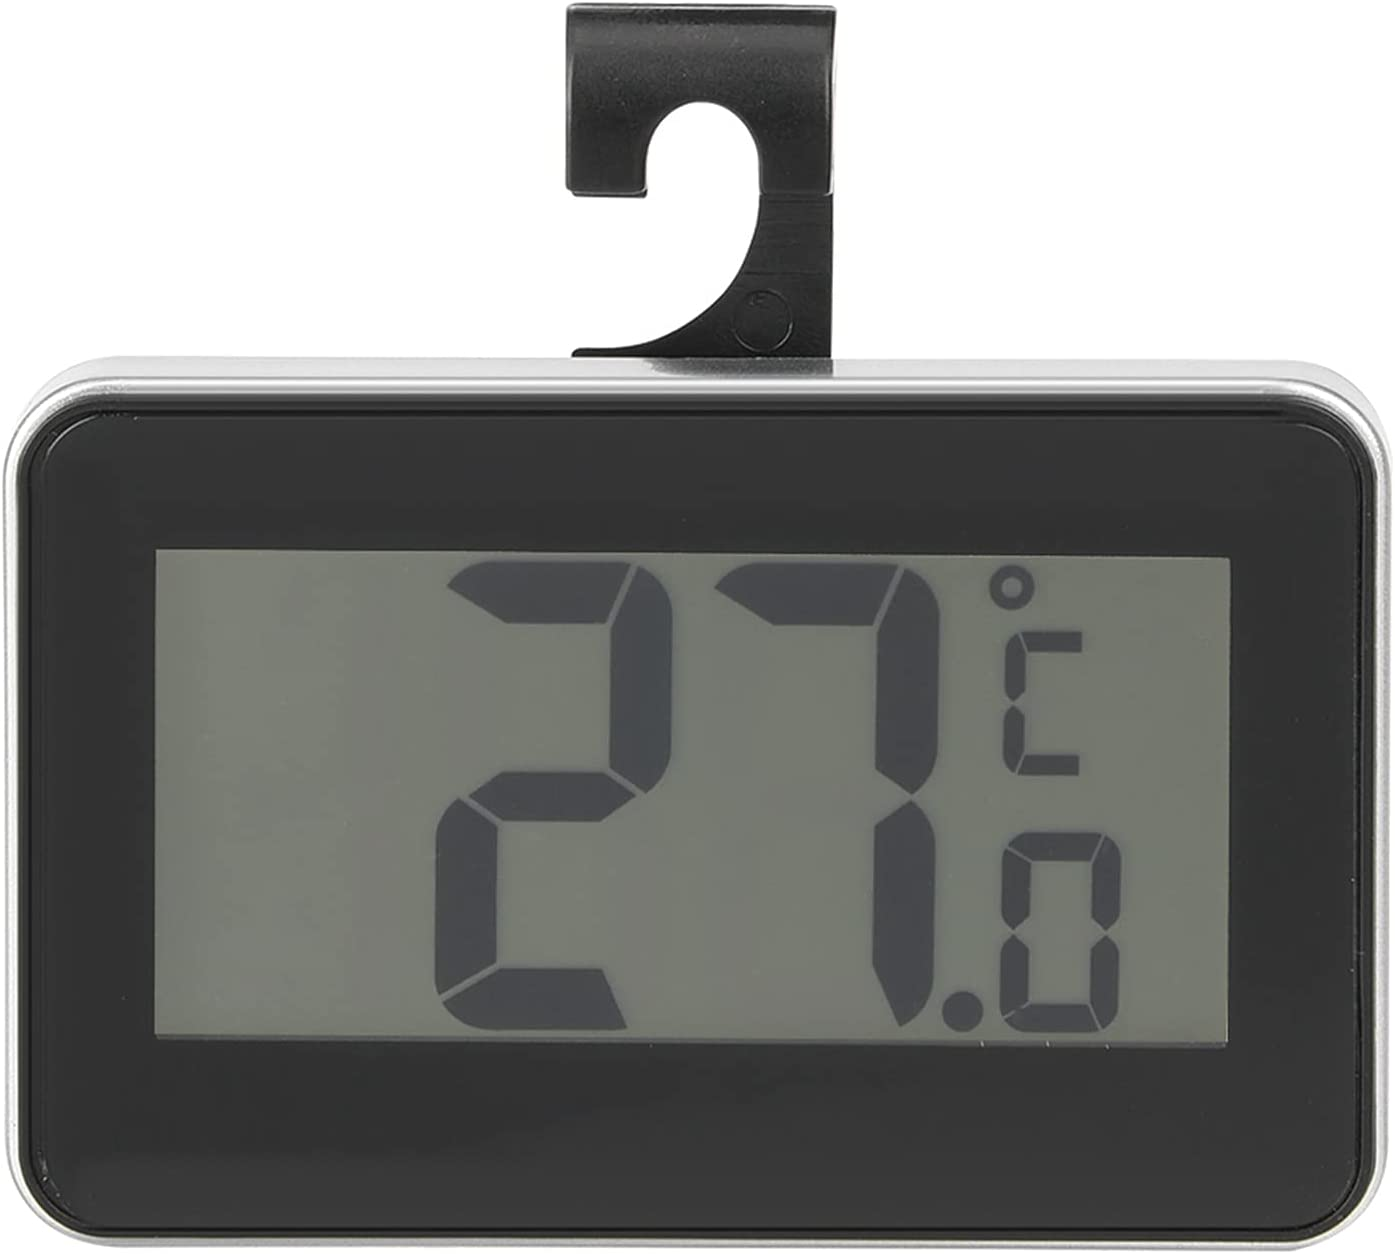 Folany High Precision Electronic Thermometer Di ℉ Choice ℃ Same day shipping